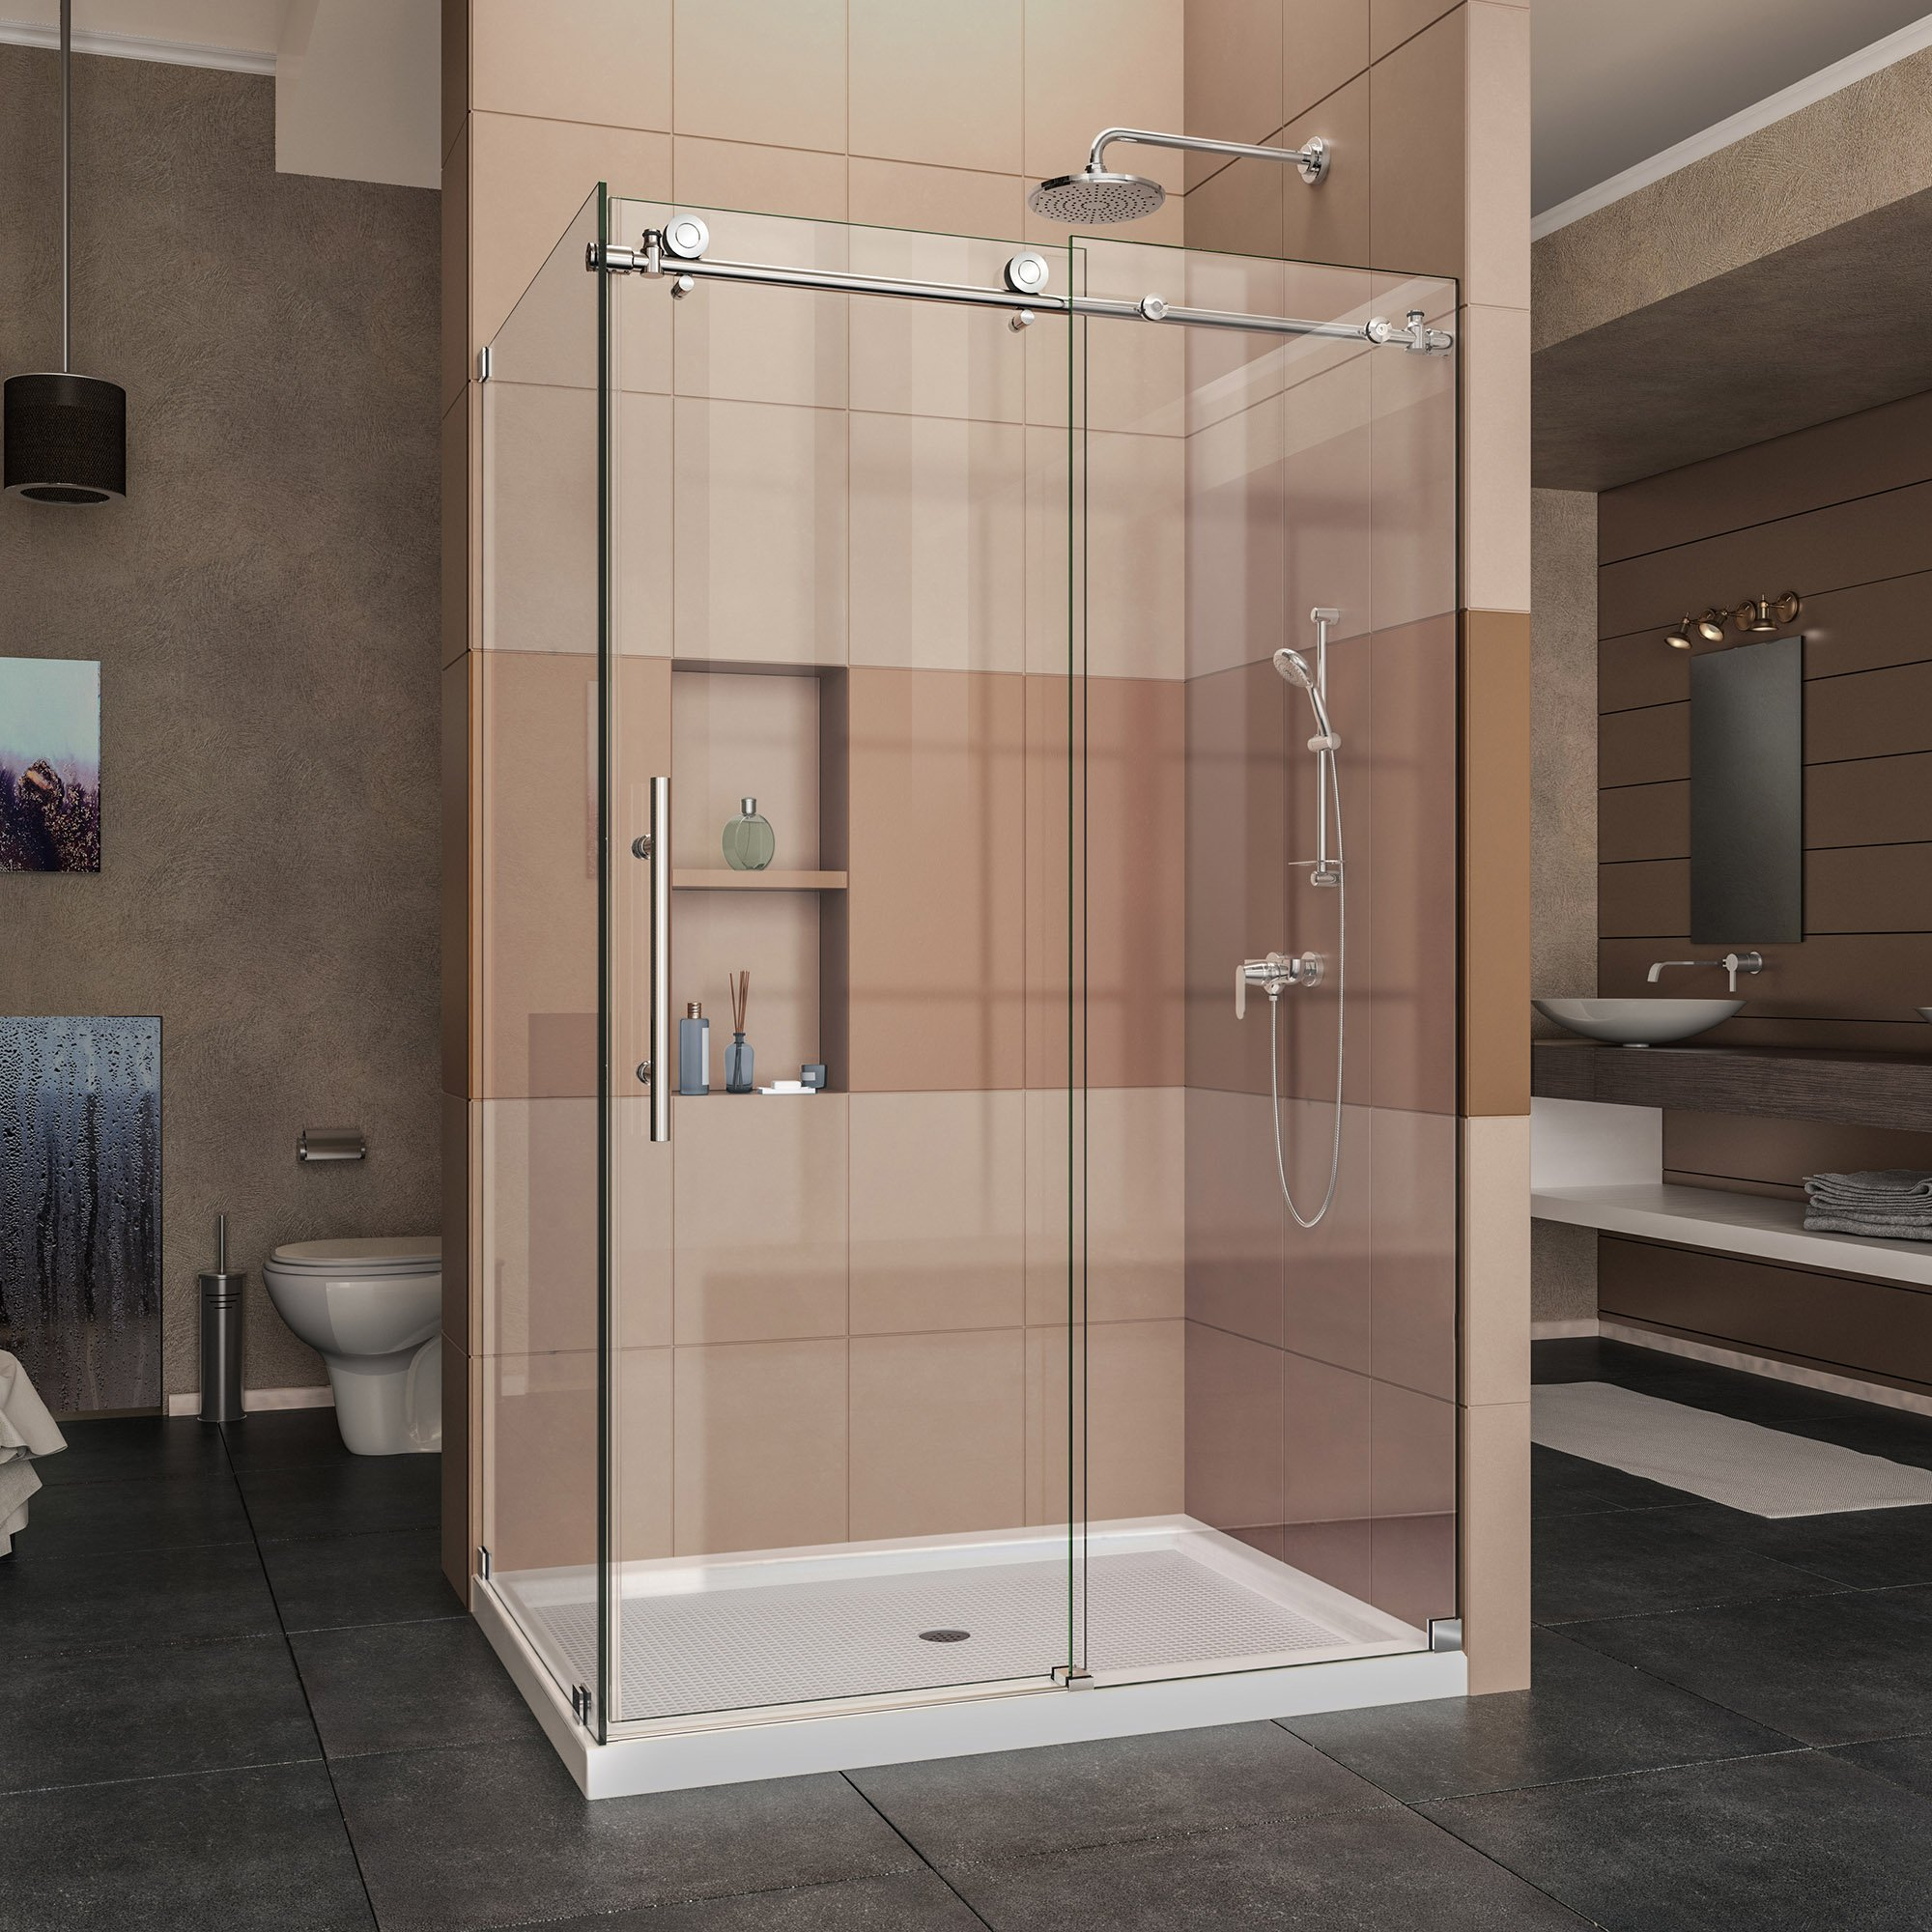 DreamLine Enigma-X 34 1/2 in. D x 44 3/8-48 3/8 in. W, Frameless Sliding Shower Enclosure, 3/8'' Glass, Polished Stainless Steel Finish